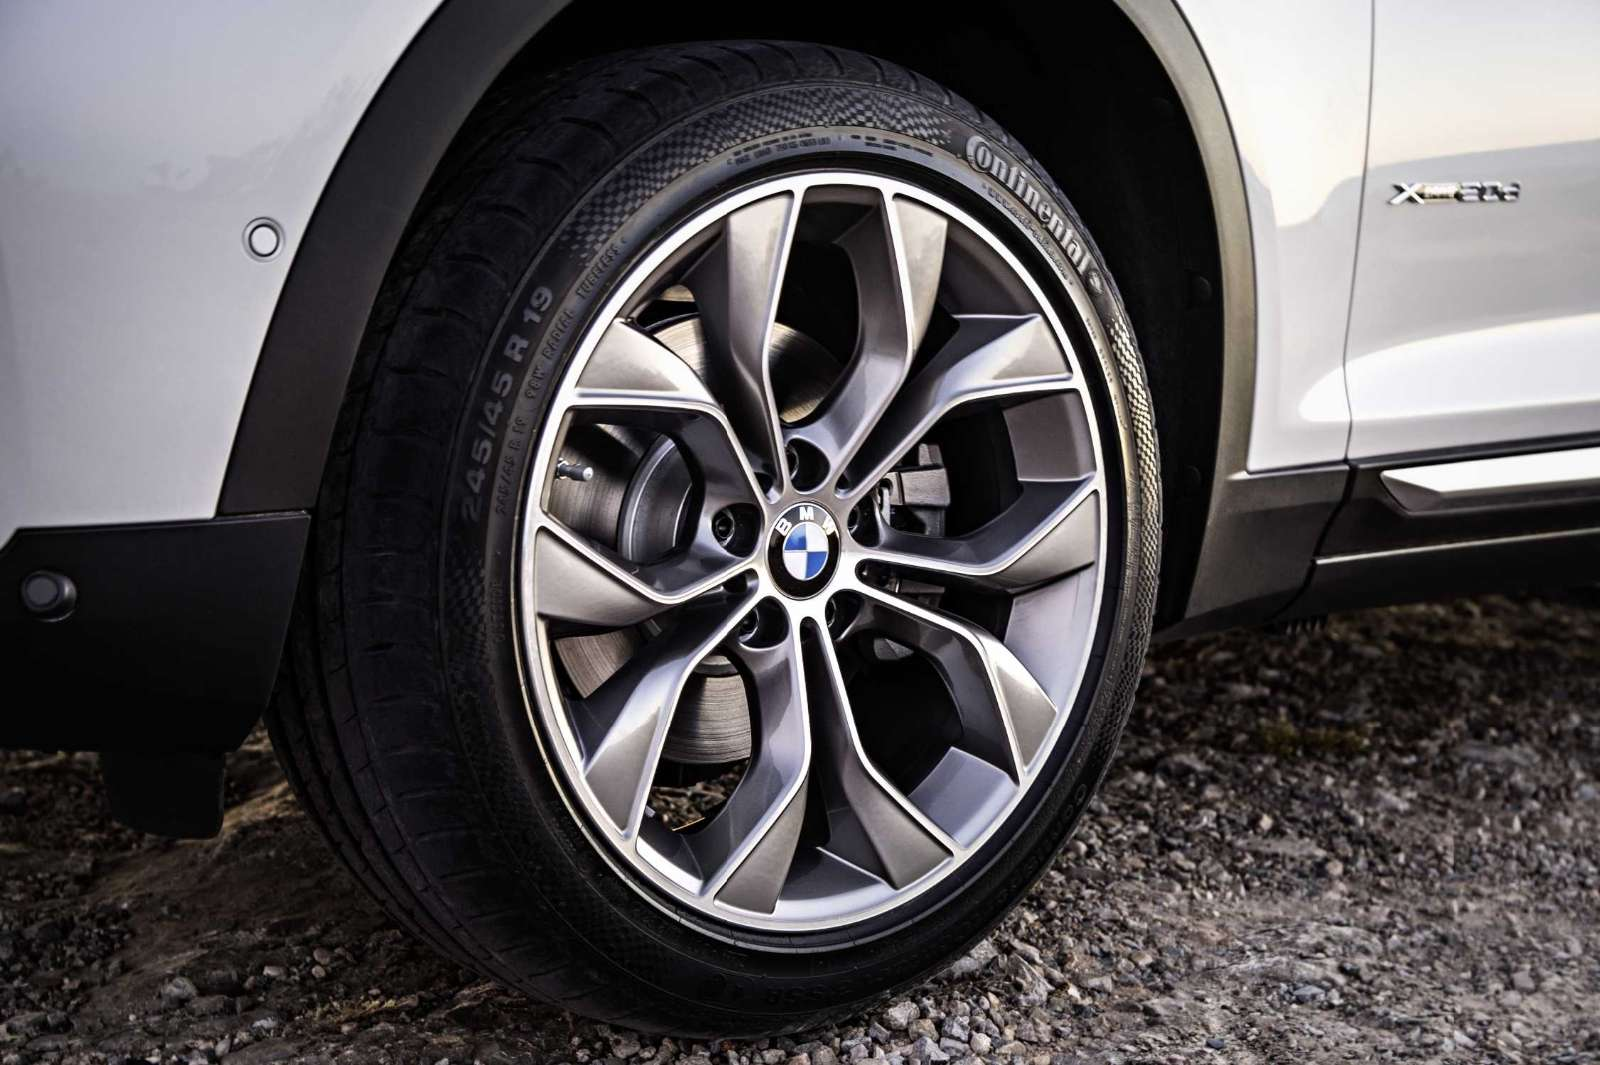 BMW X3 2015 Facelift wheels